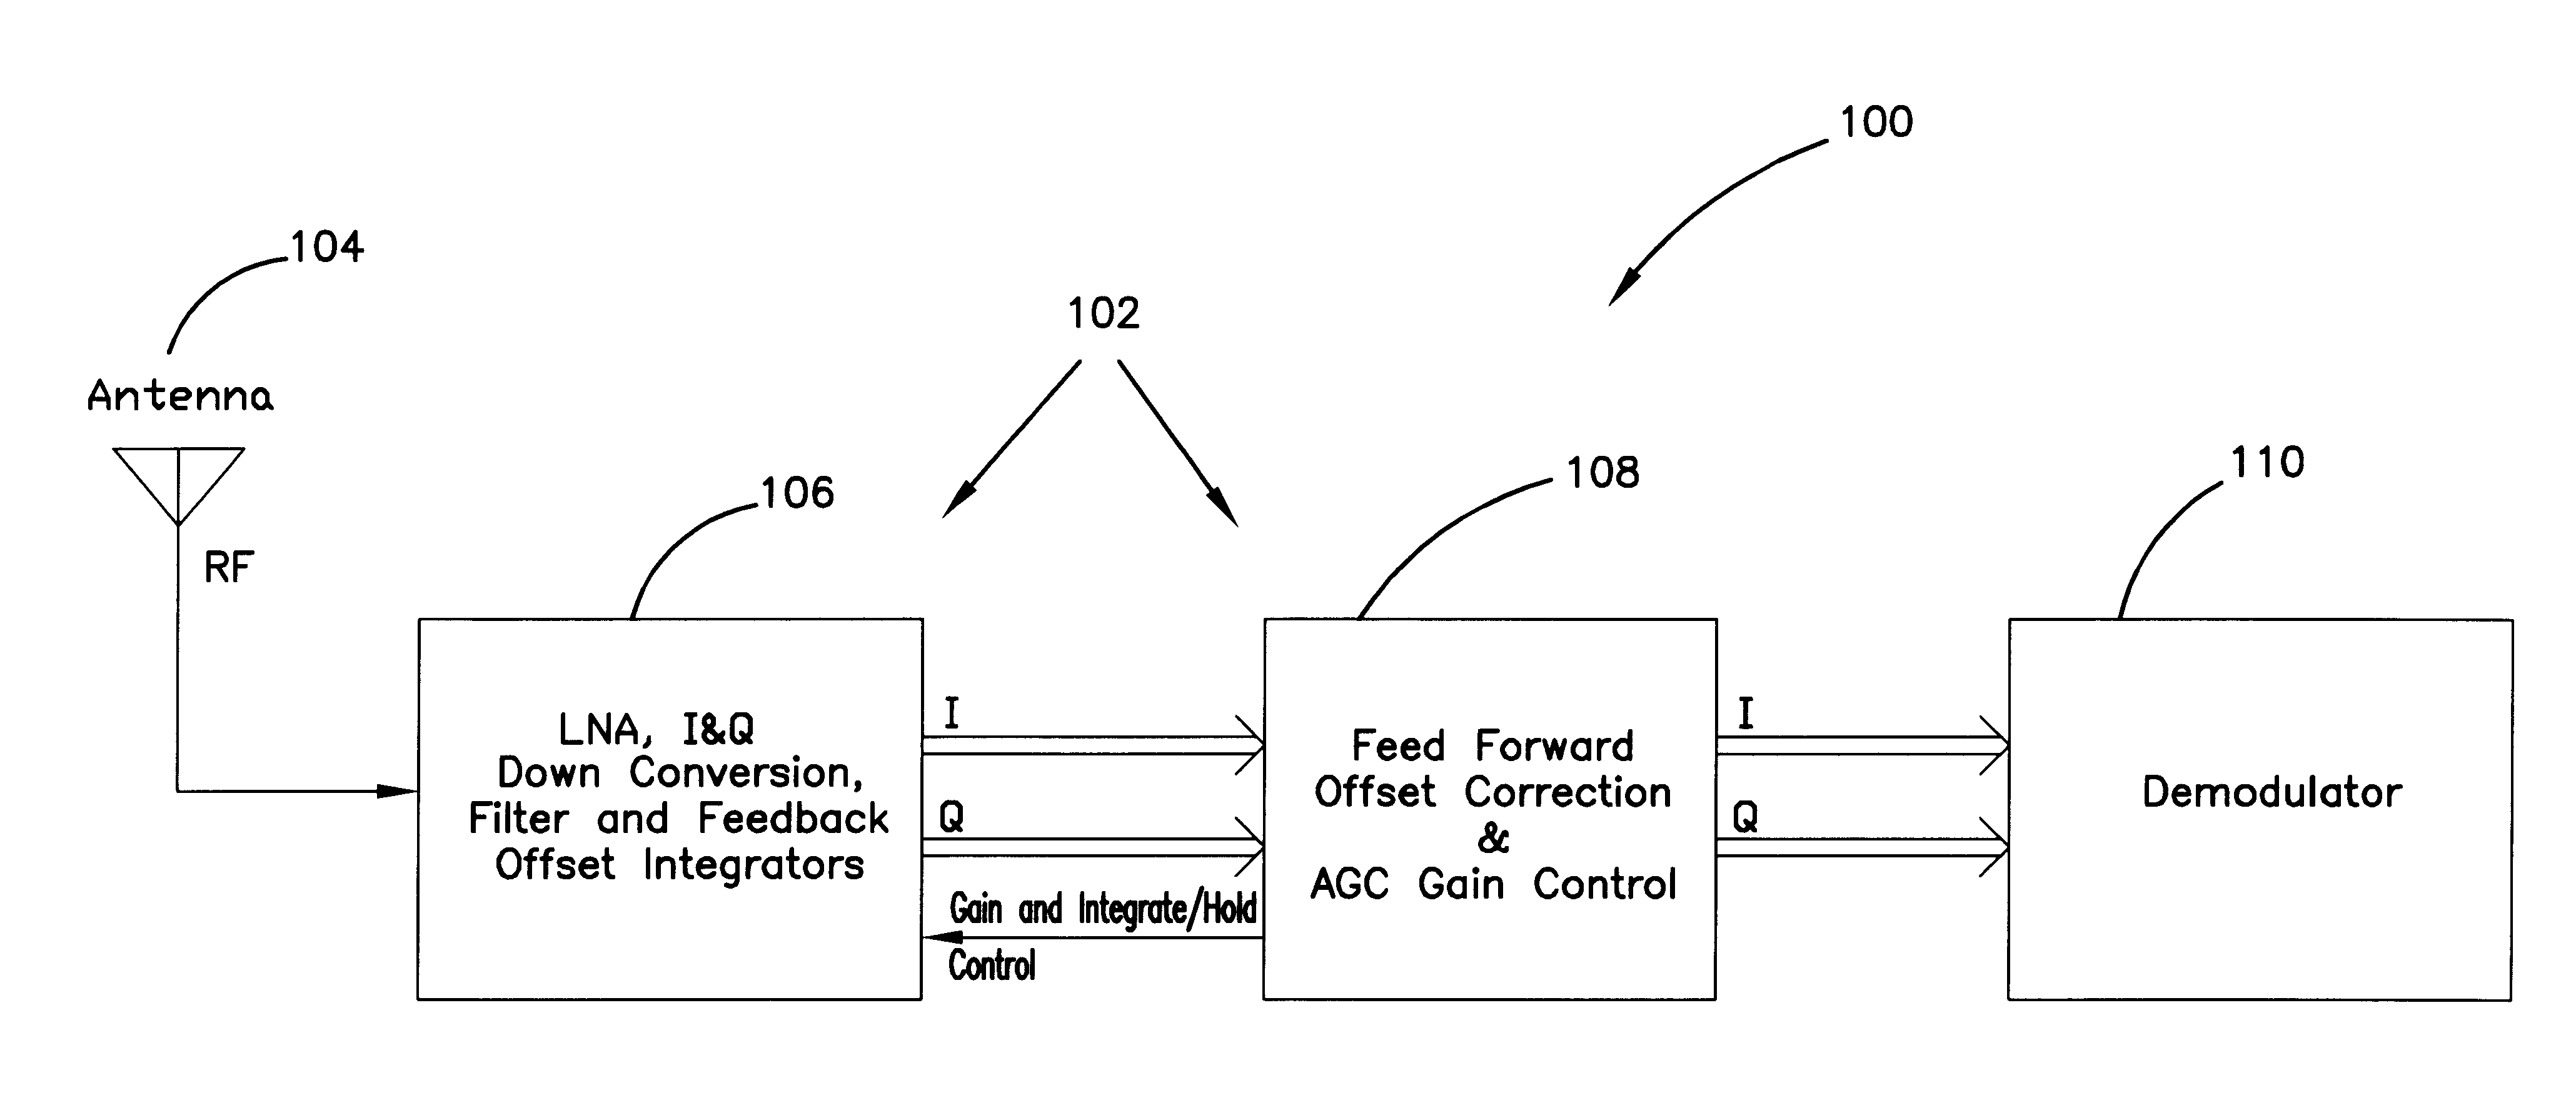 Schematic Of An Agc Used In The Analog Telephone Network The Feedback